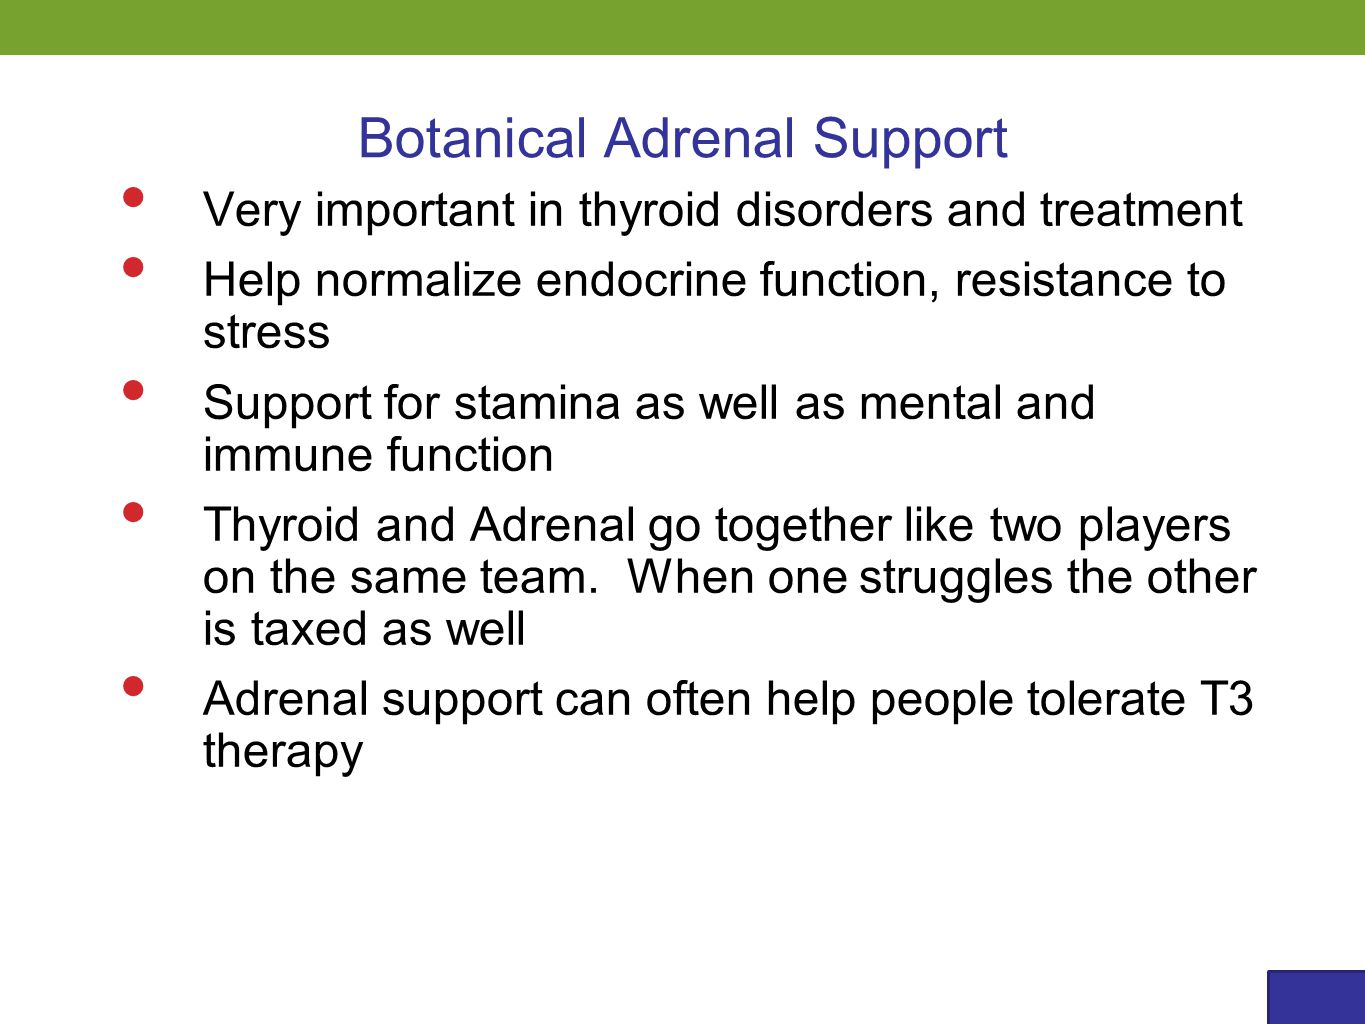 Very important in thyroid disorders and treatment Help normalize endocrine function, resistance to stress Support for stamina as well as mental and immune function Thyroid and Adrenal go together like two players on the same team.